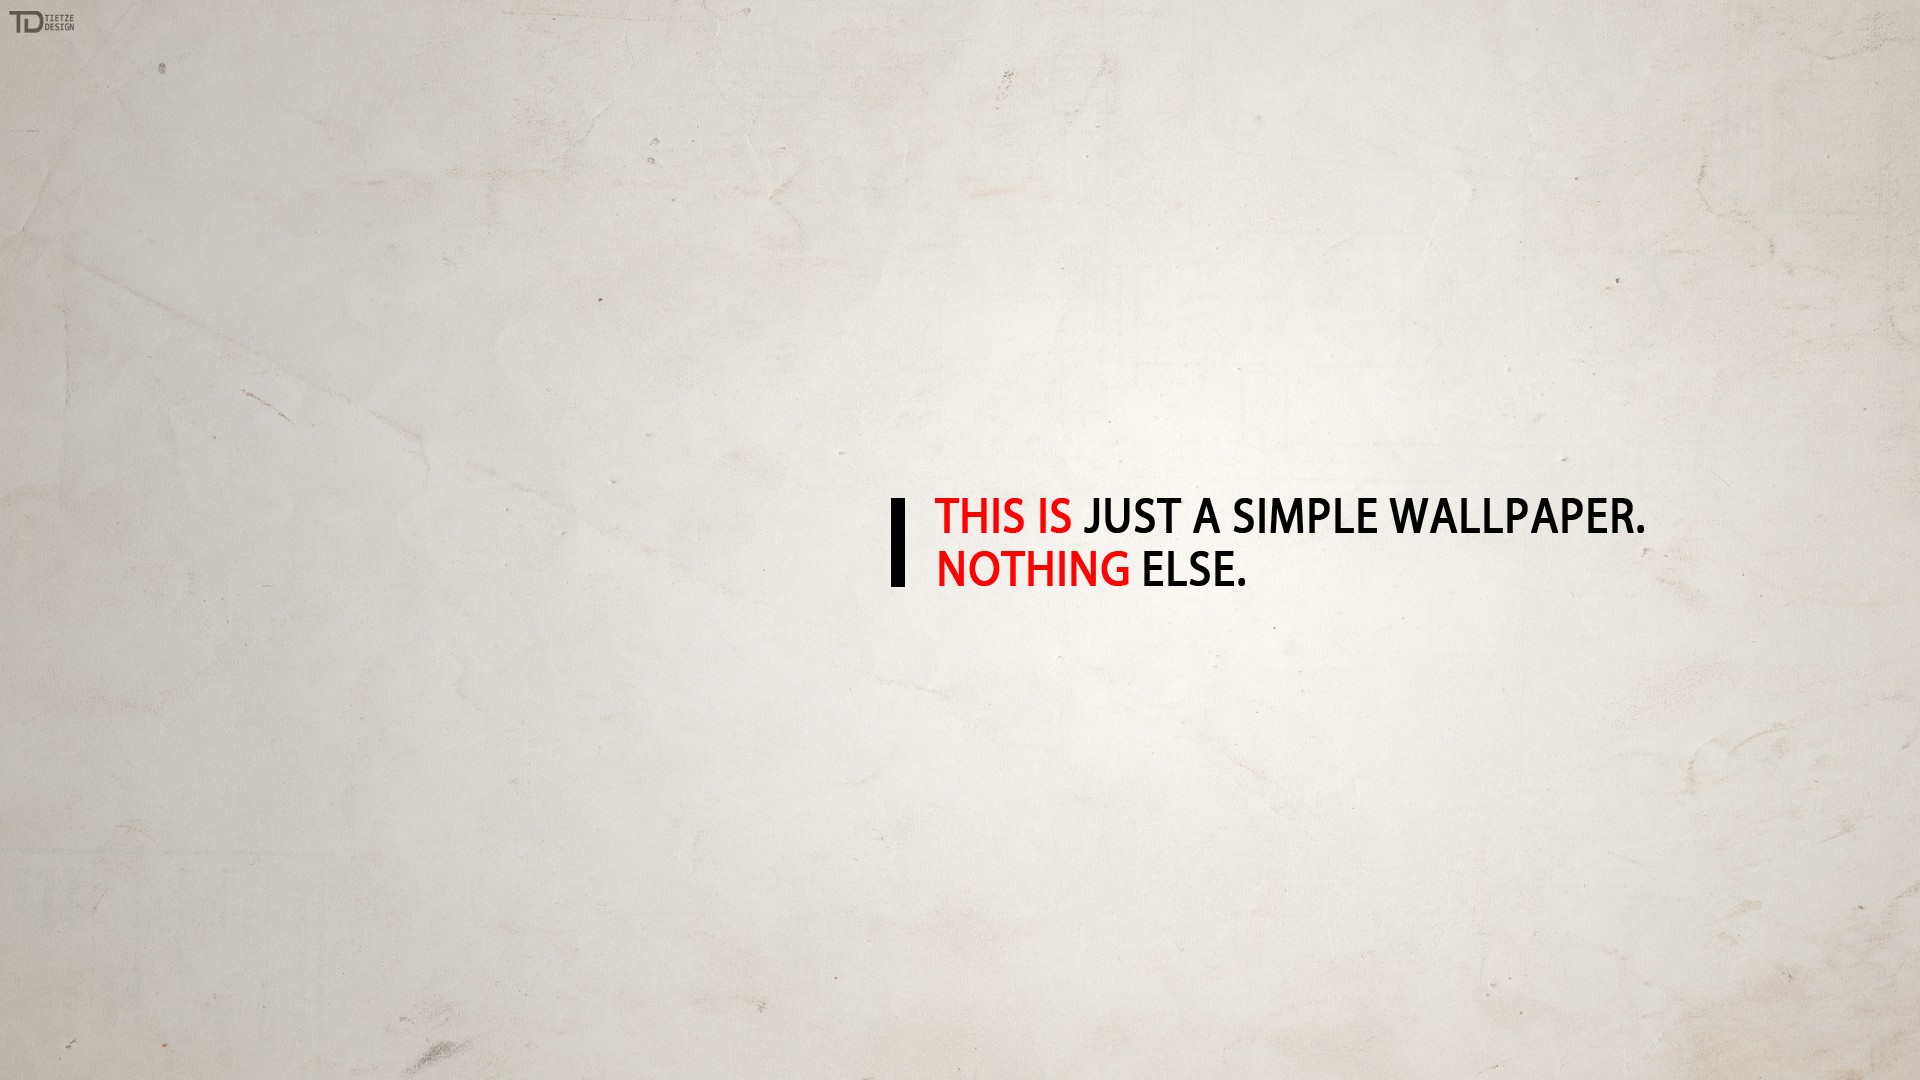 Just simple